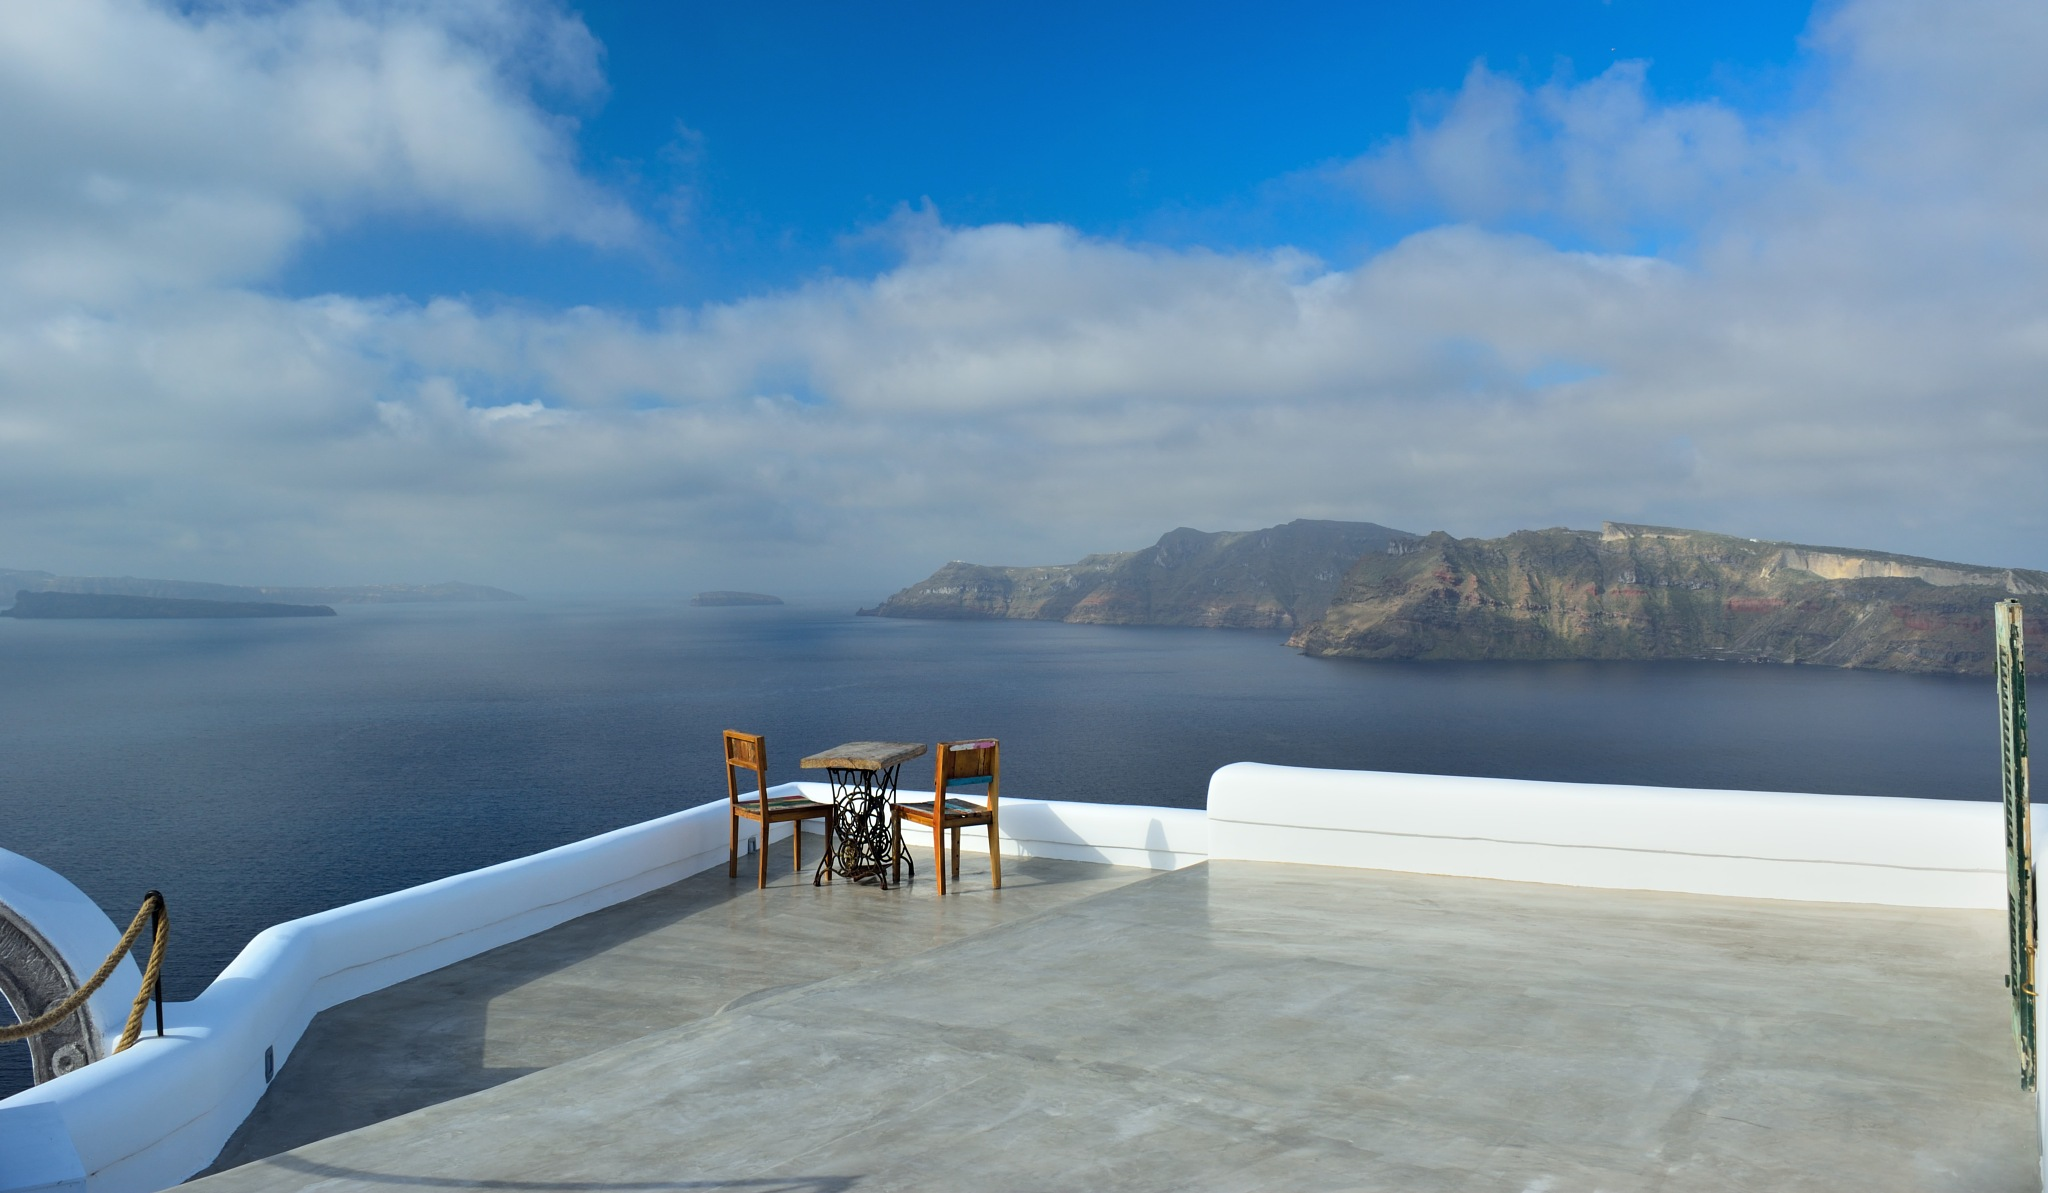 First table with a view by John Papadopoulos